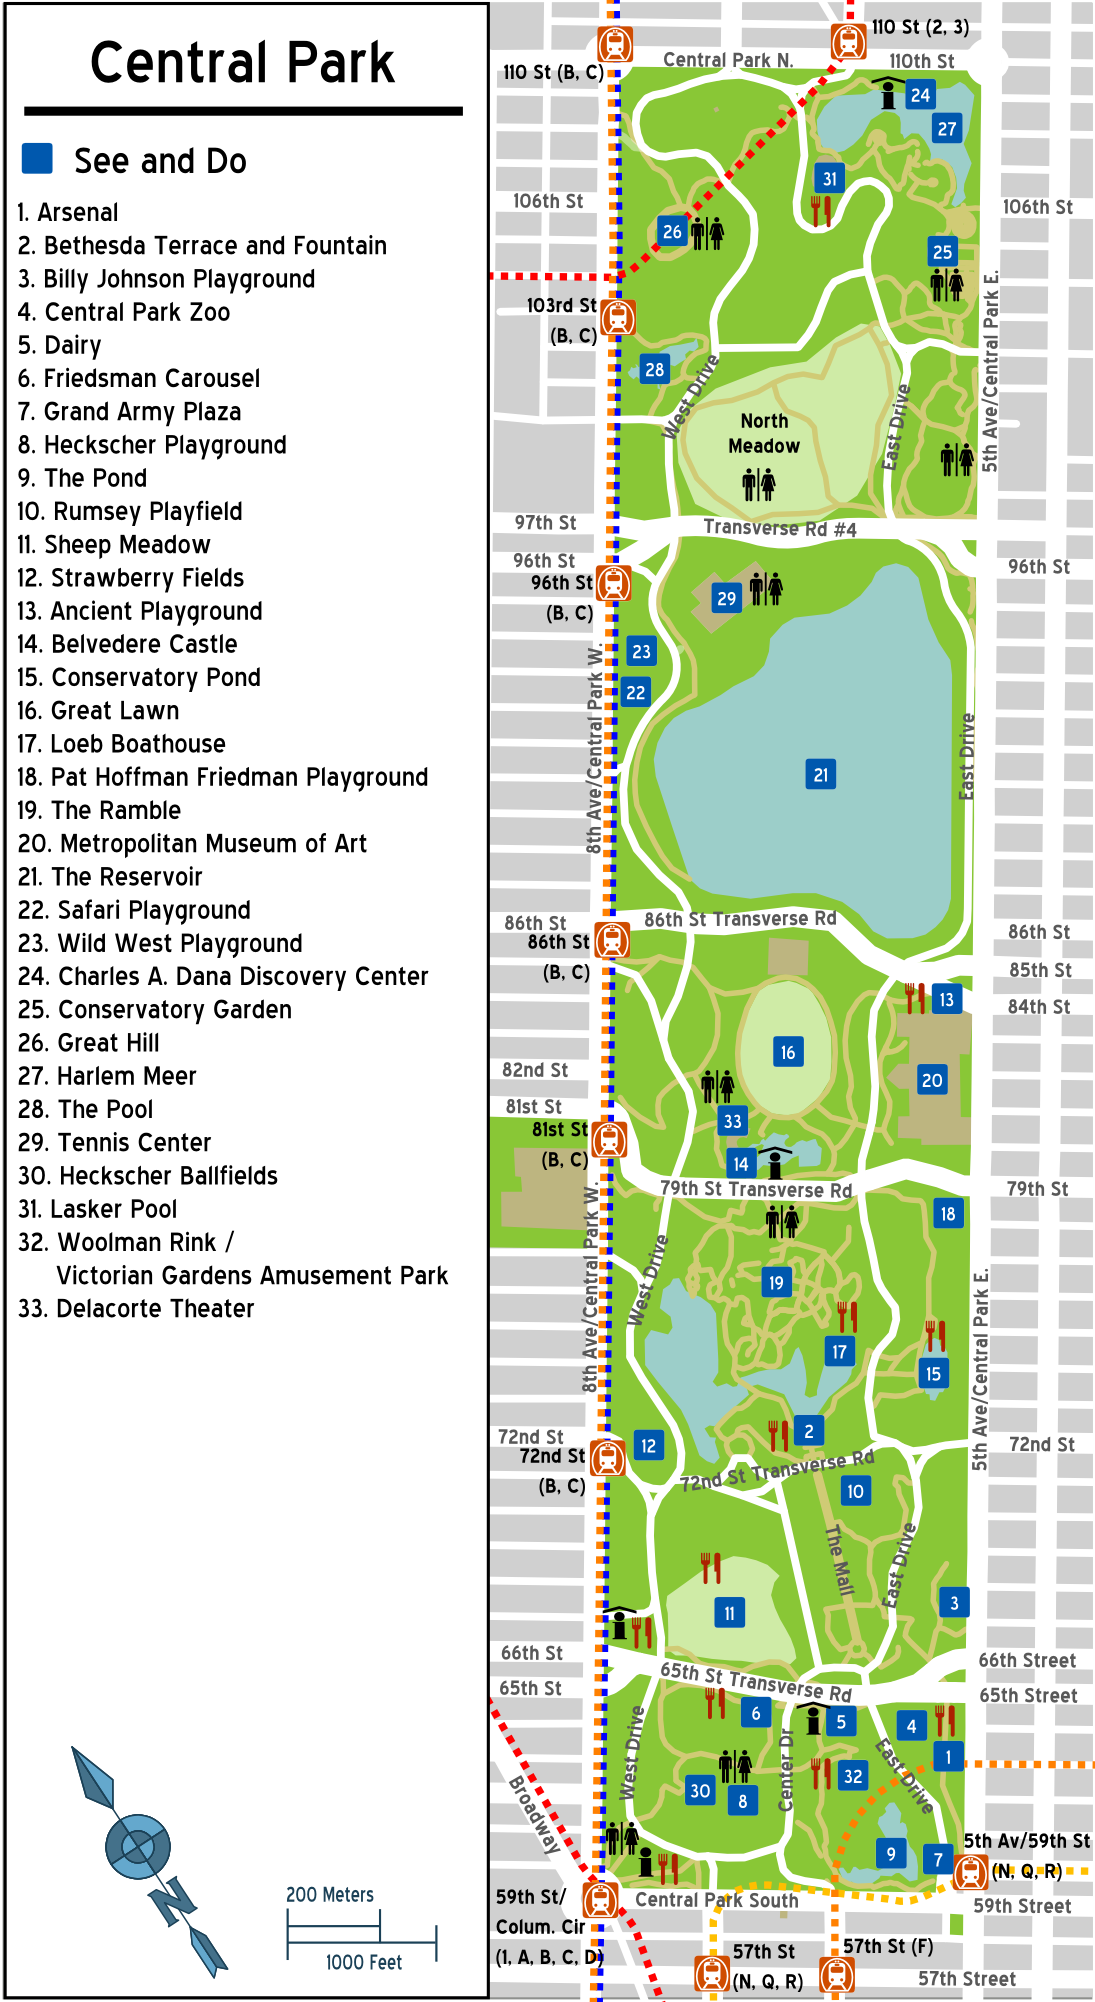 File:Centralpark map.png - Wikimedia Commons on sheep meadow map, soho tribeca map, governors island map, the metropolitan museum of art map, lenox hill map, empire state building map, south street seaport map, times square map, eastern parkway map, upper east side map, queens map, staten island map, 5th avenue map, bronx map, nyc map, manhattan map, brooklyn map, strawberry fields map, new york map, greenwich village map,